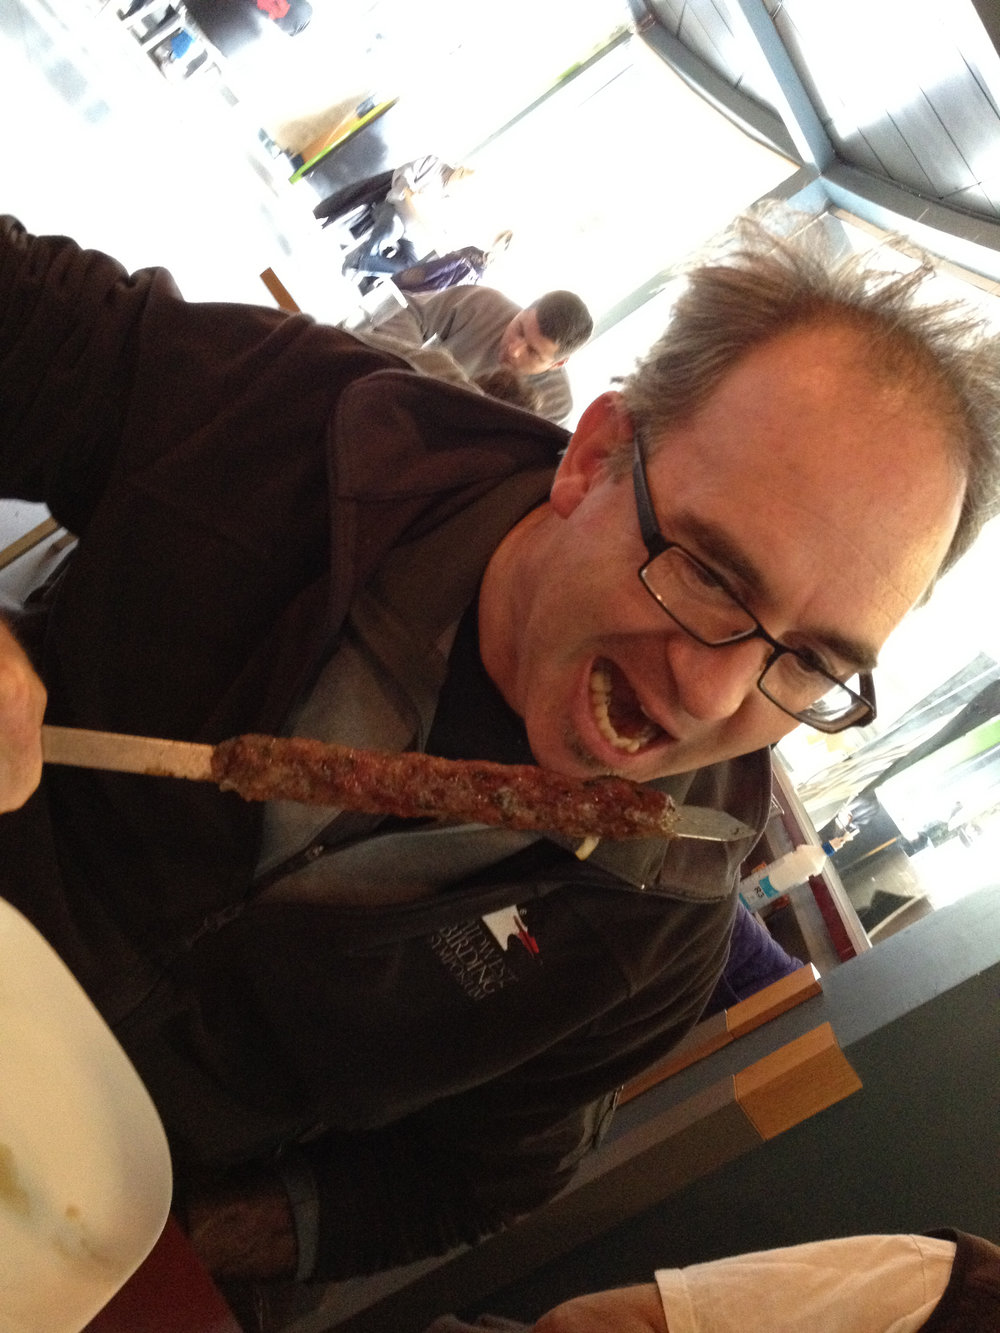 BT3 and I shared a skewer of turkey testicles in Israel.